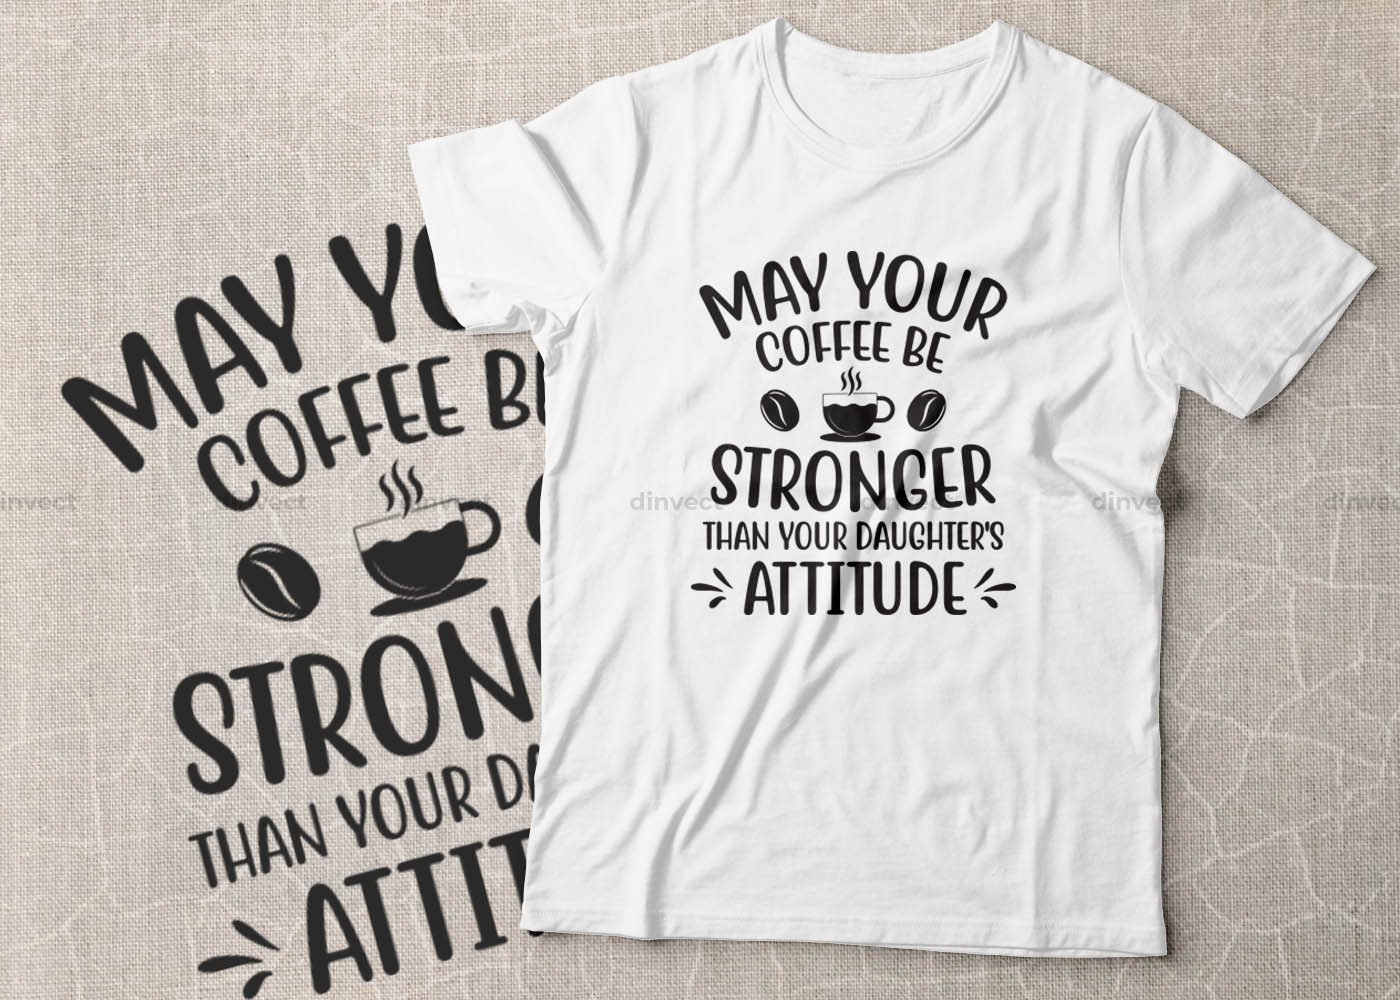 Coffee SVG, Coffee Bundle Svg, Coffee Mug Svg, Funny Coffee Quotes SVG, Mug Design Svg - May your coffee be stronger than your daughters attitude -